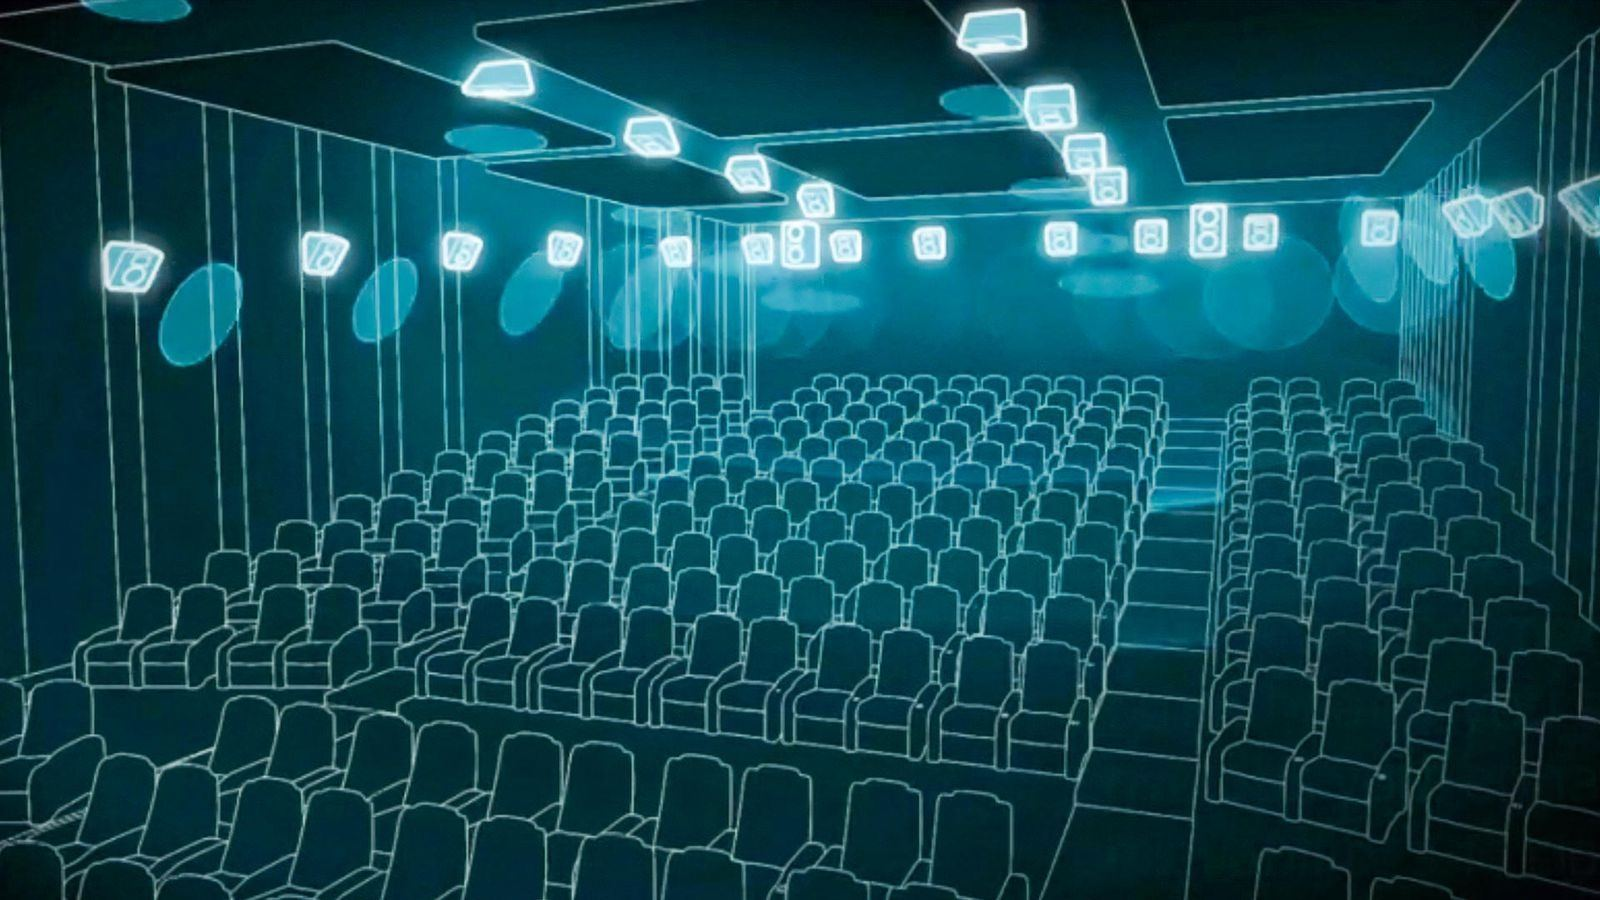 Is there any 4D sound enabled theatre in Hyderabad for the movie 2 0